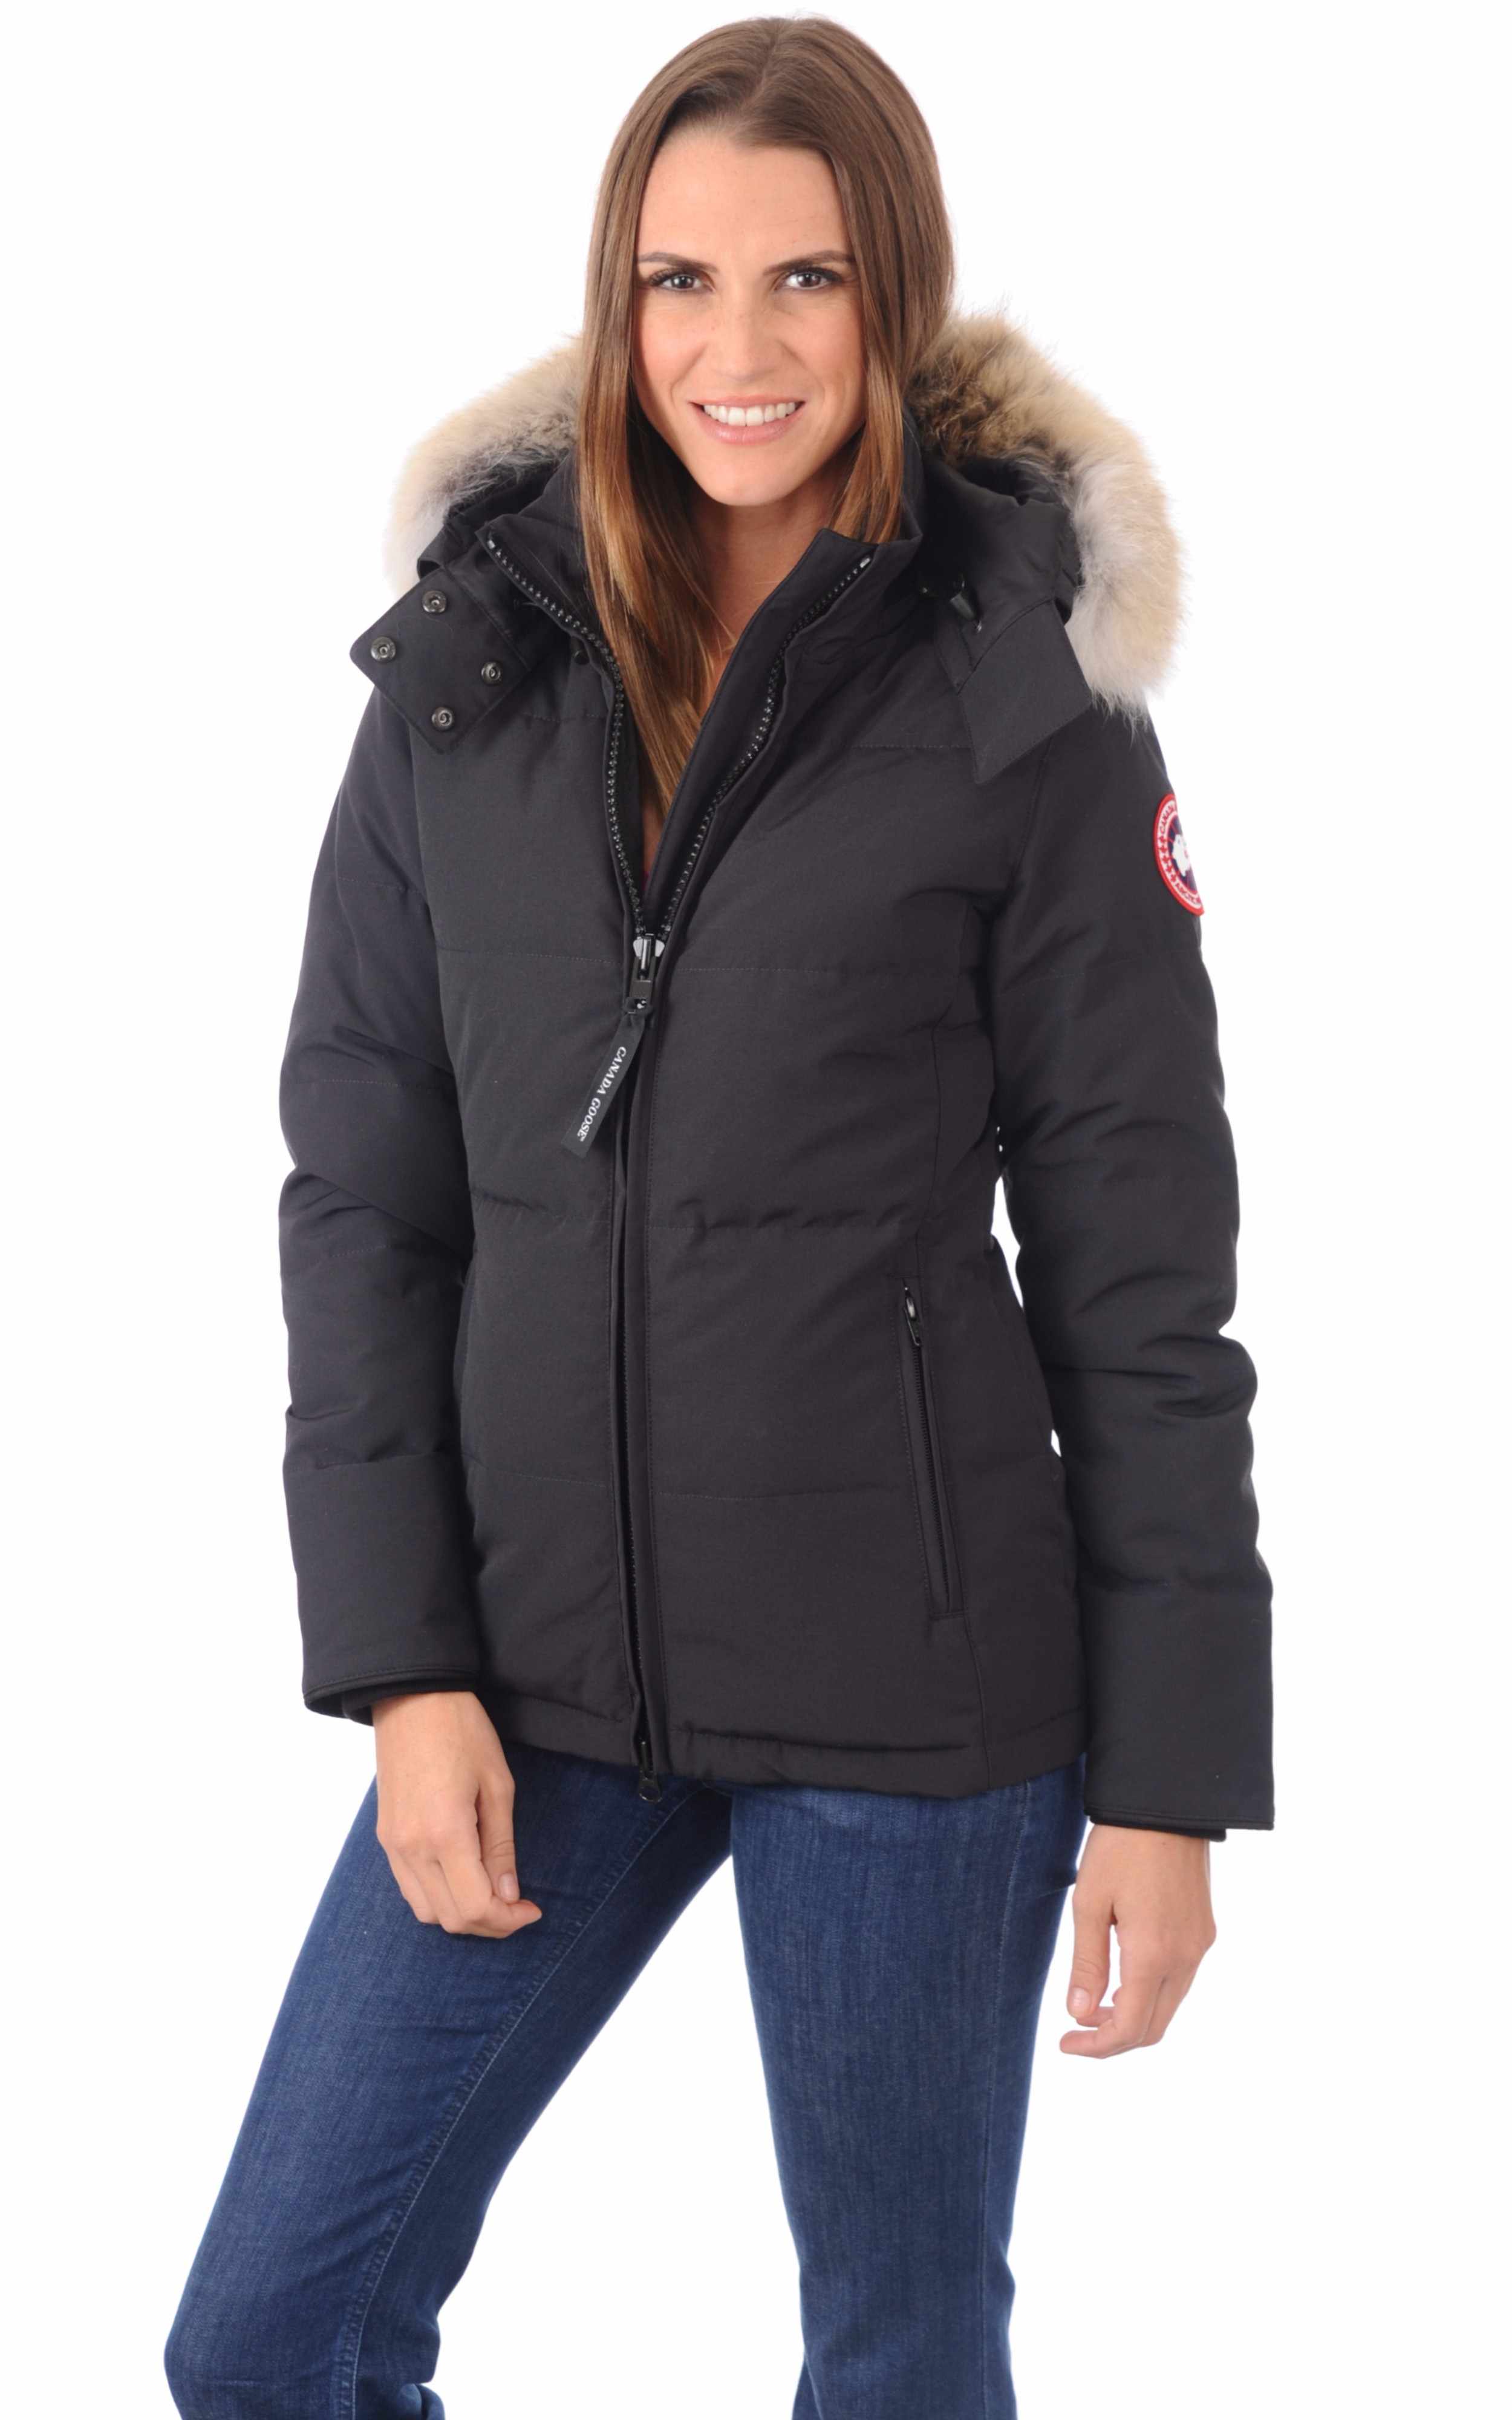 doudoune chelsea navy canada goose la canadienne doudoune parka textile marine. Black Bedroom Furniture Sets. Home Design Ideas